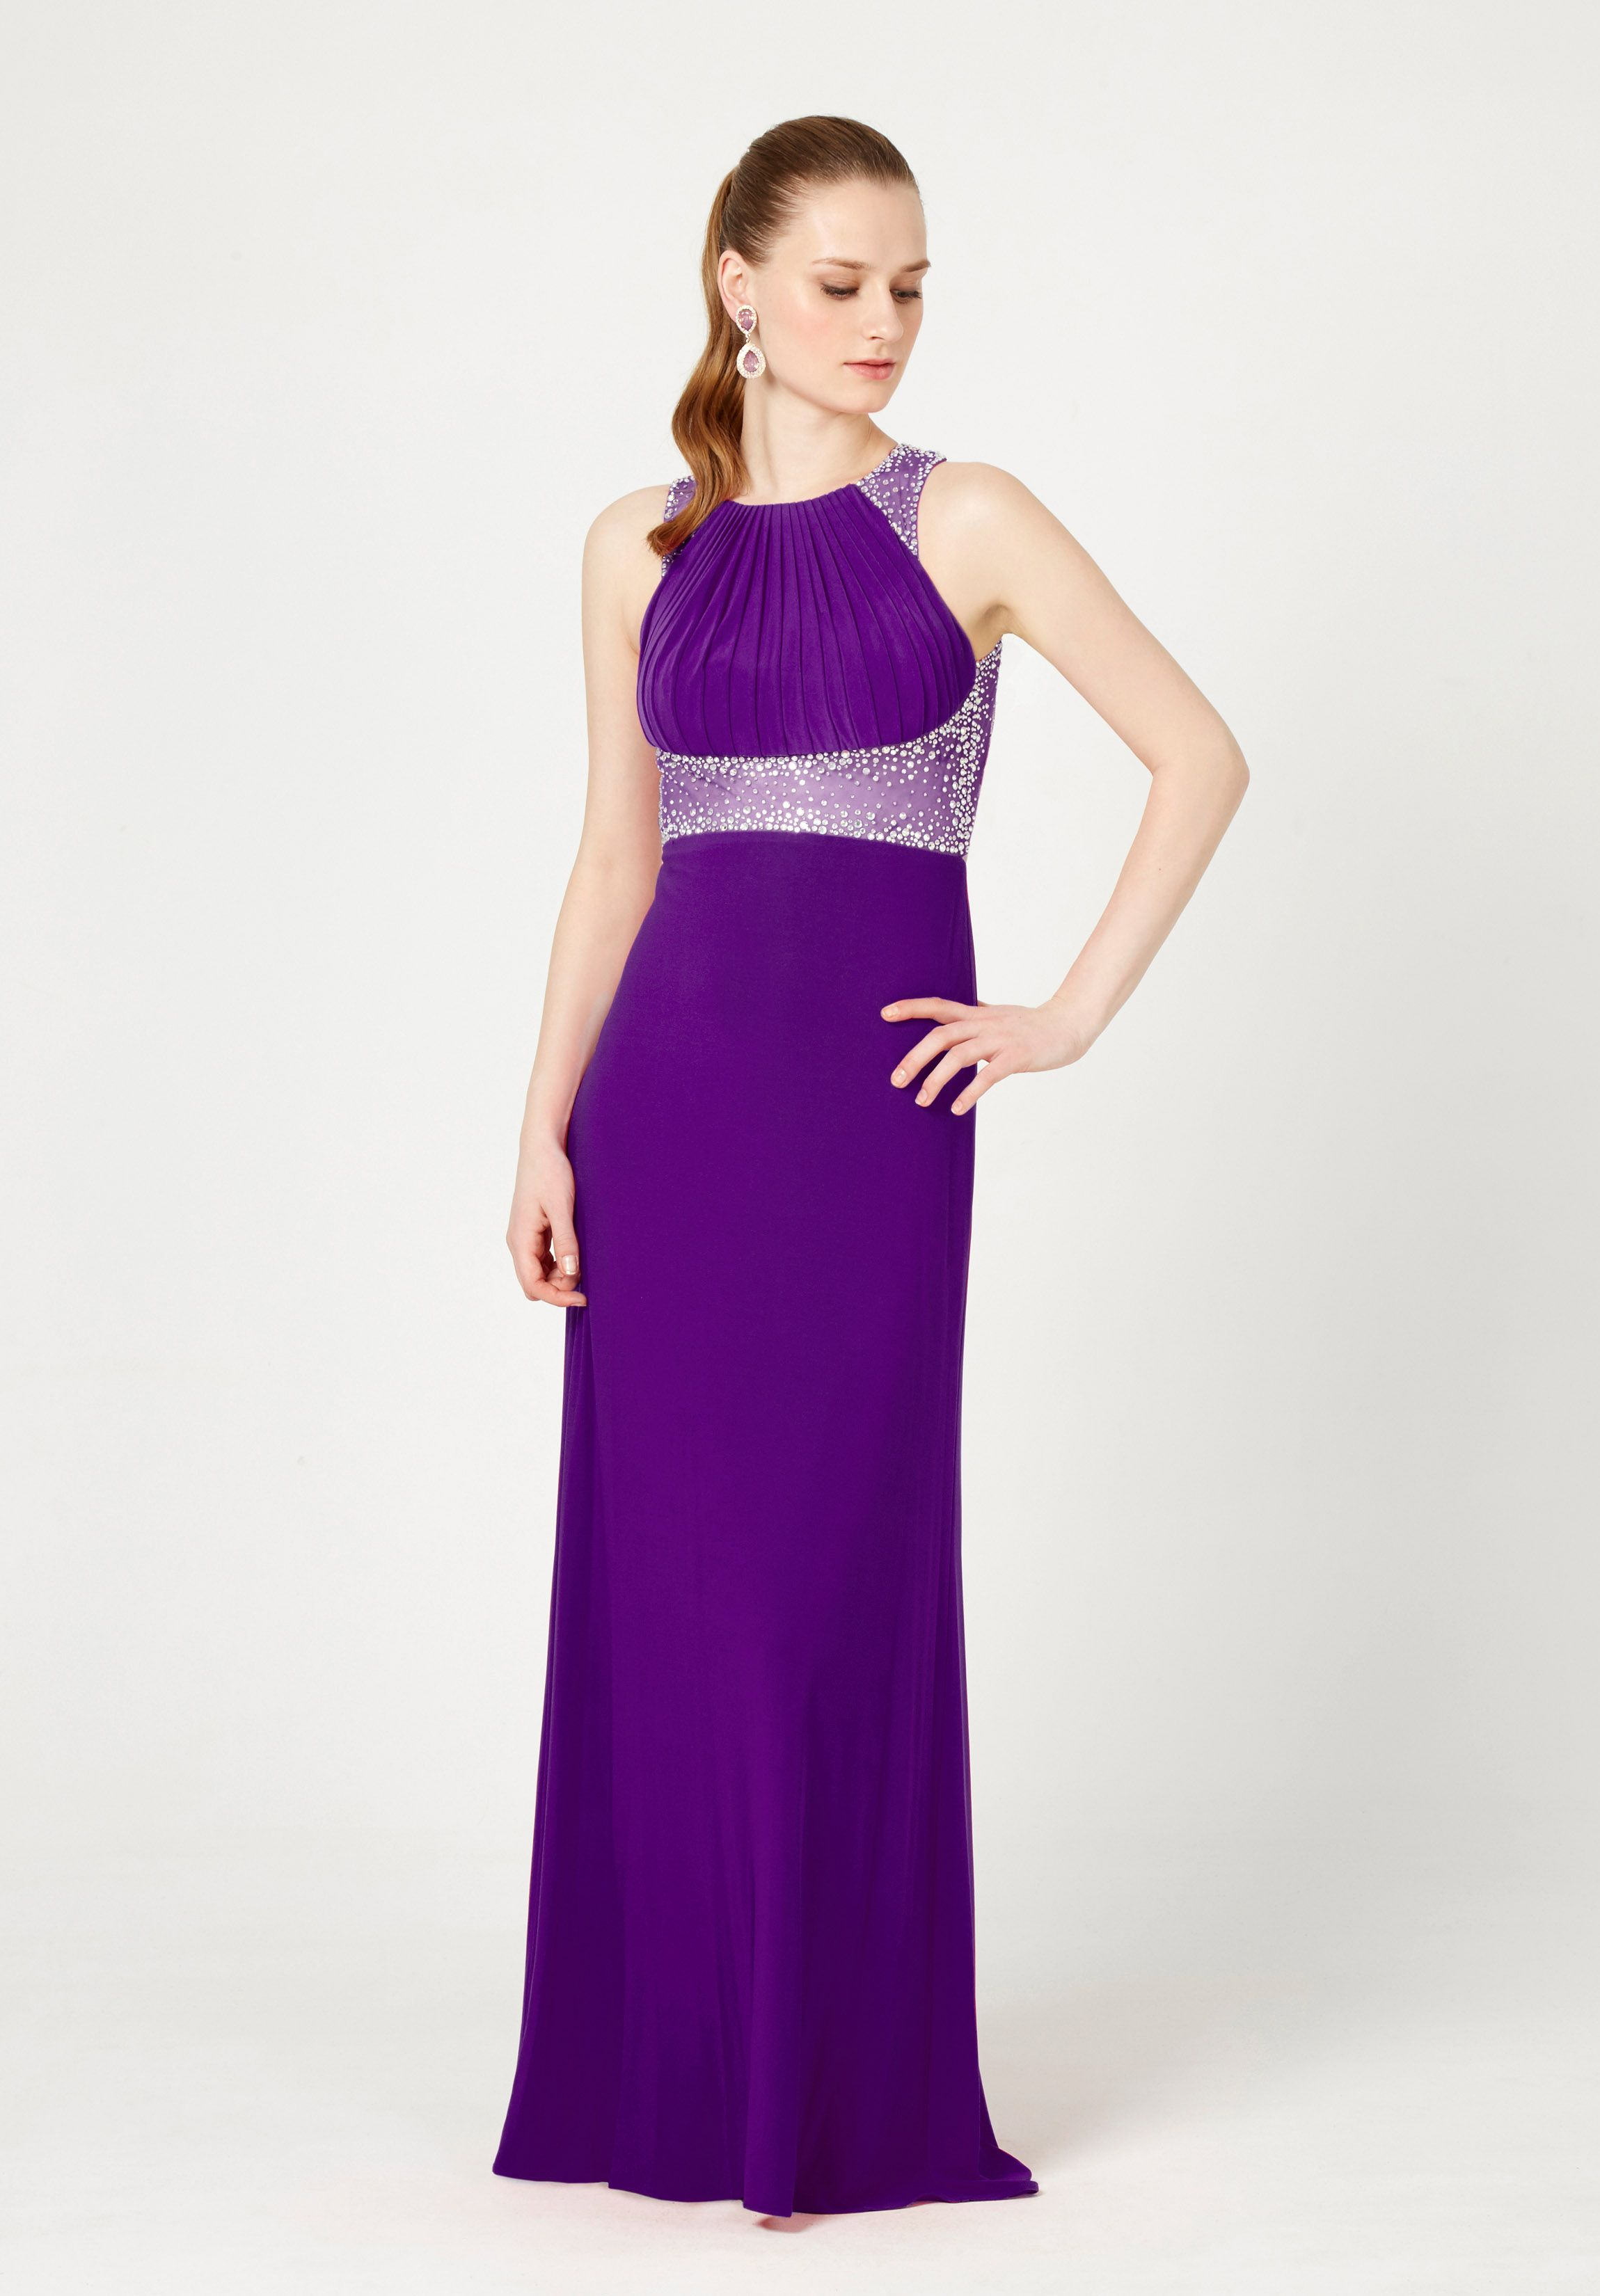 Vestidos para damas de honor en color violeta y morado